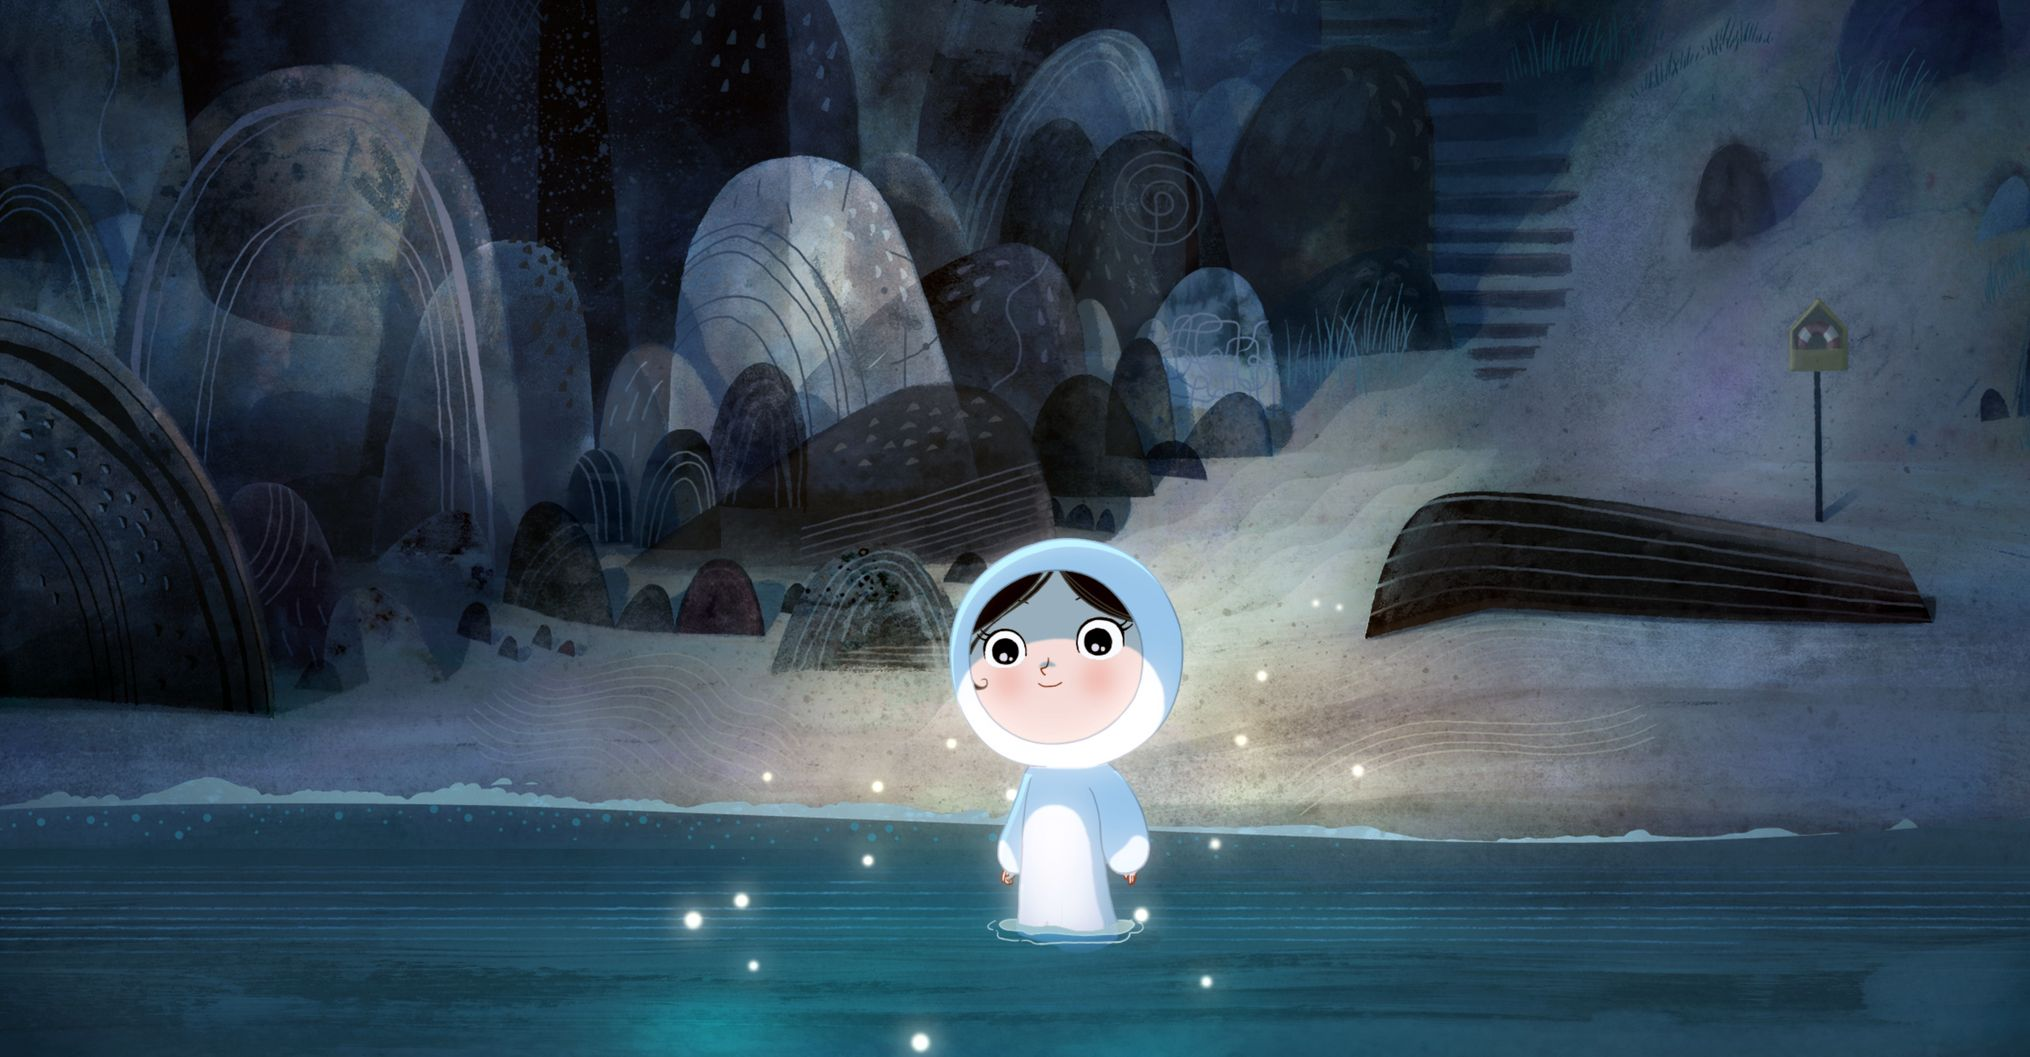 Water and light in Song of the Sea